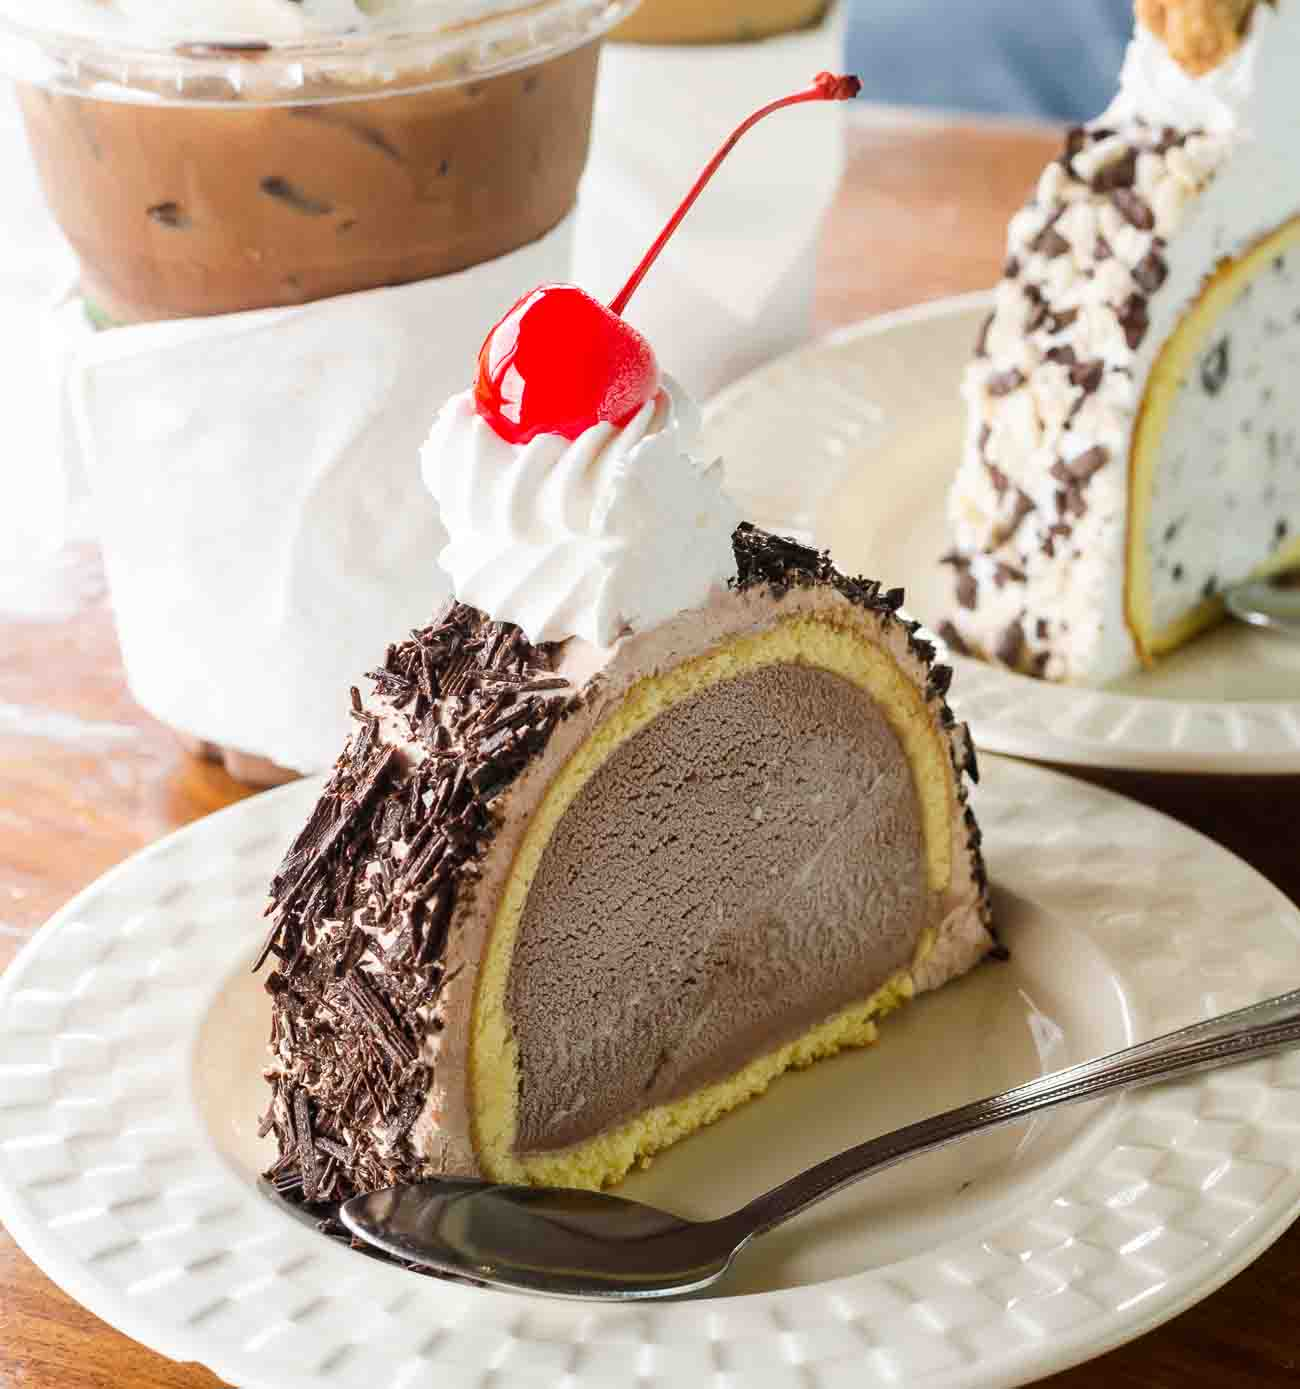 Eggless chocolate ice cream cake recipe by archanas kitchen eggless chocolate ice cream cake recipe ccuart Images